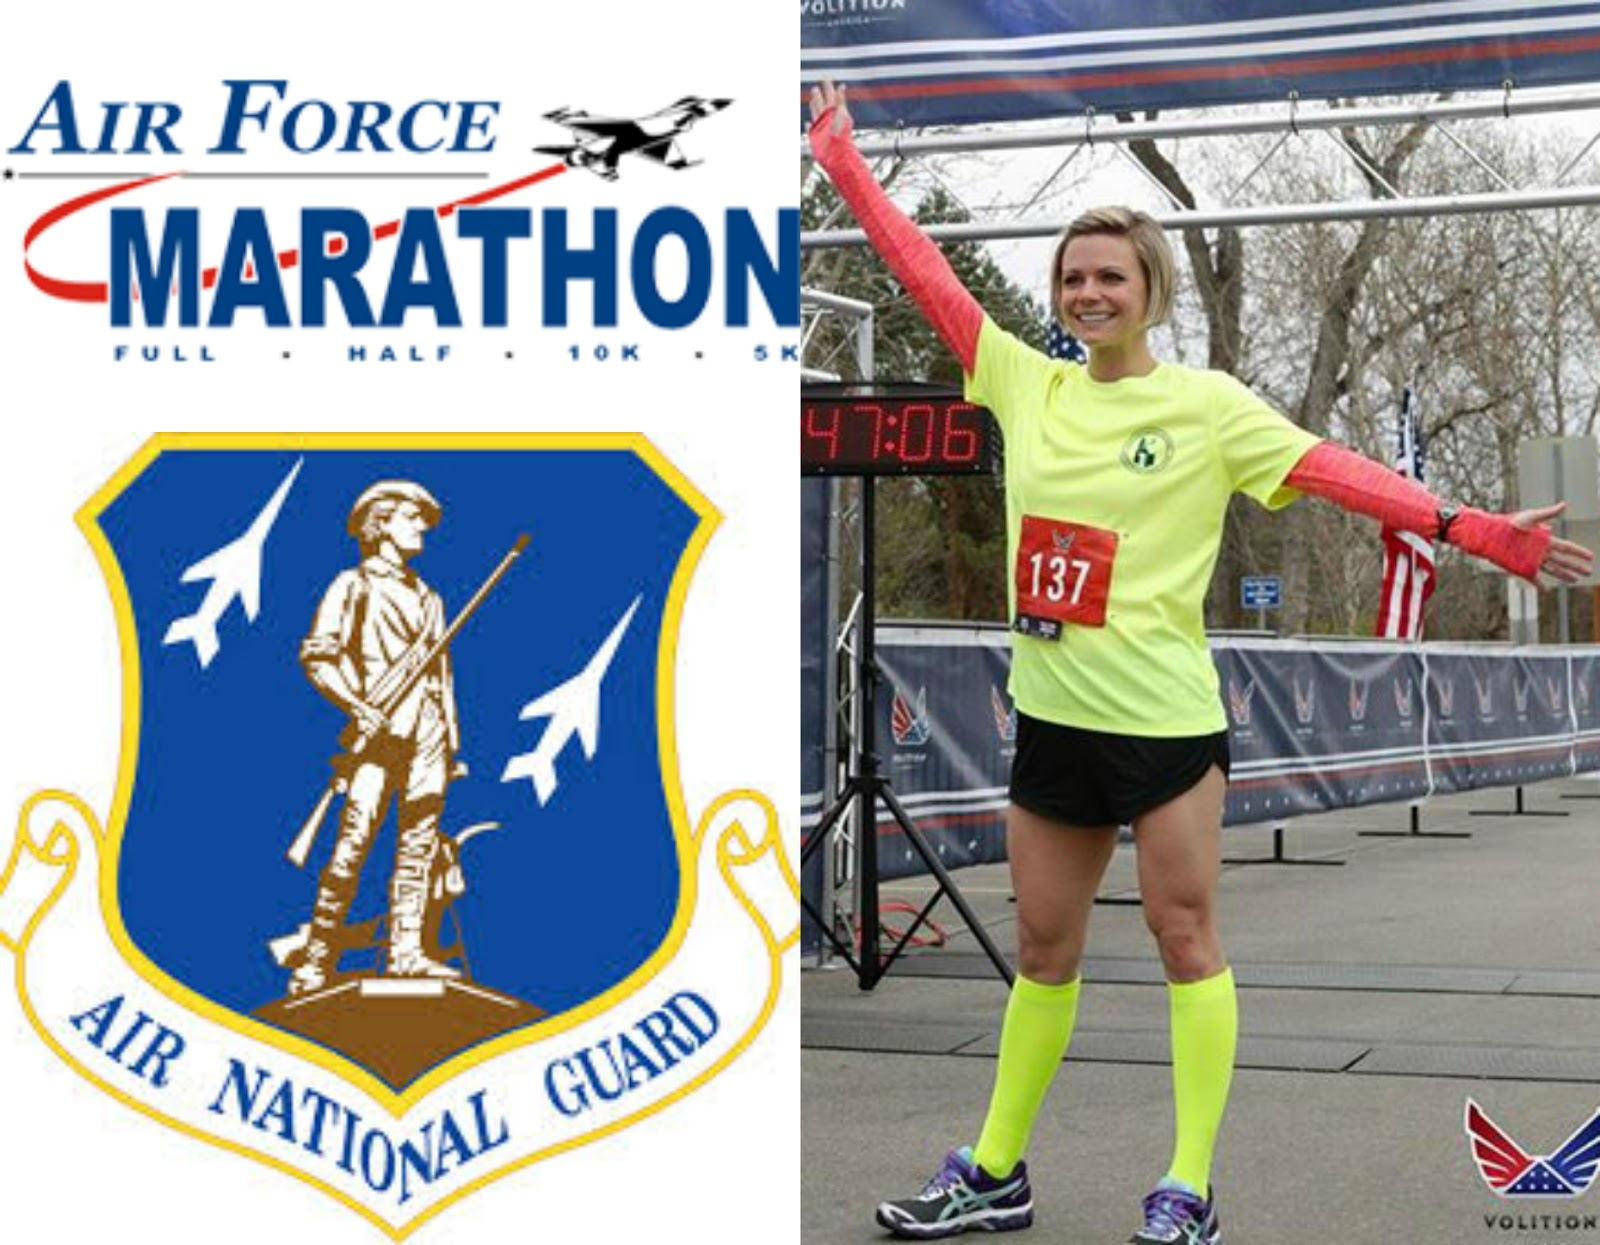 Air Force Half Marathon, Air Force MAJCOM Challenge, Idaho Air National Guard Runner